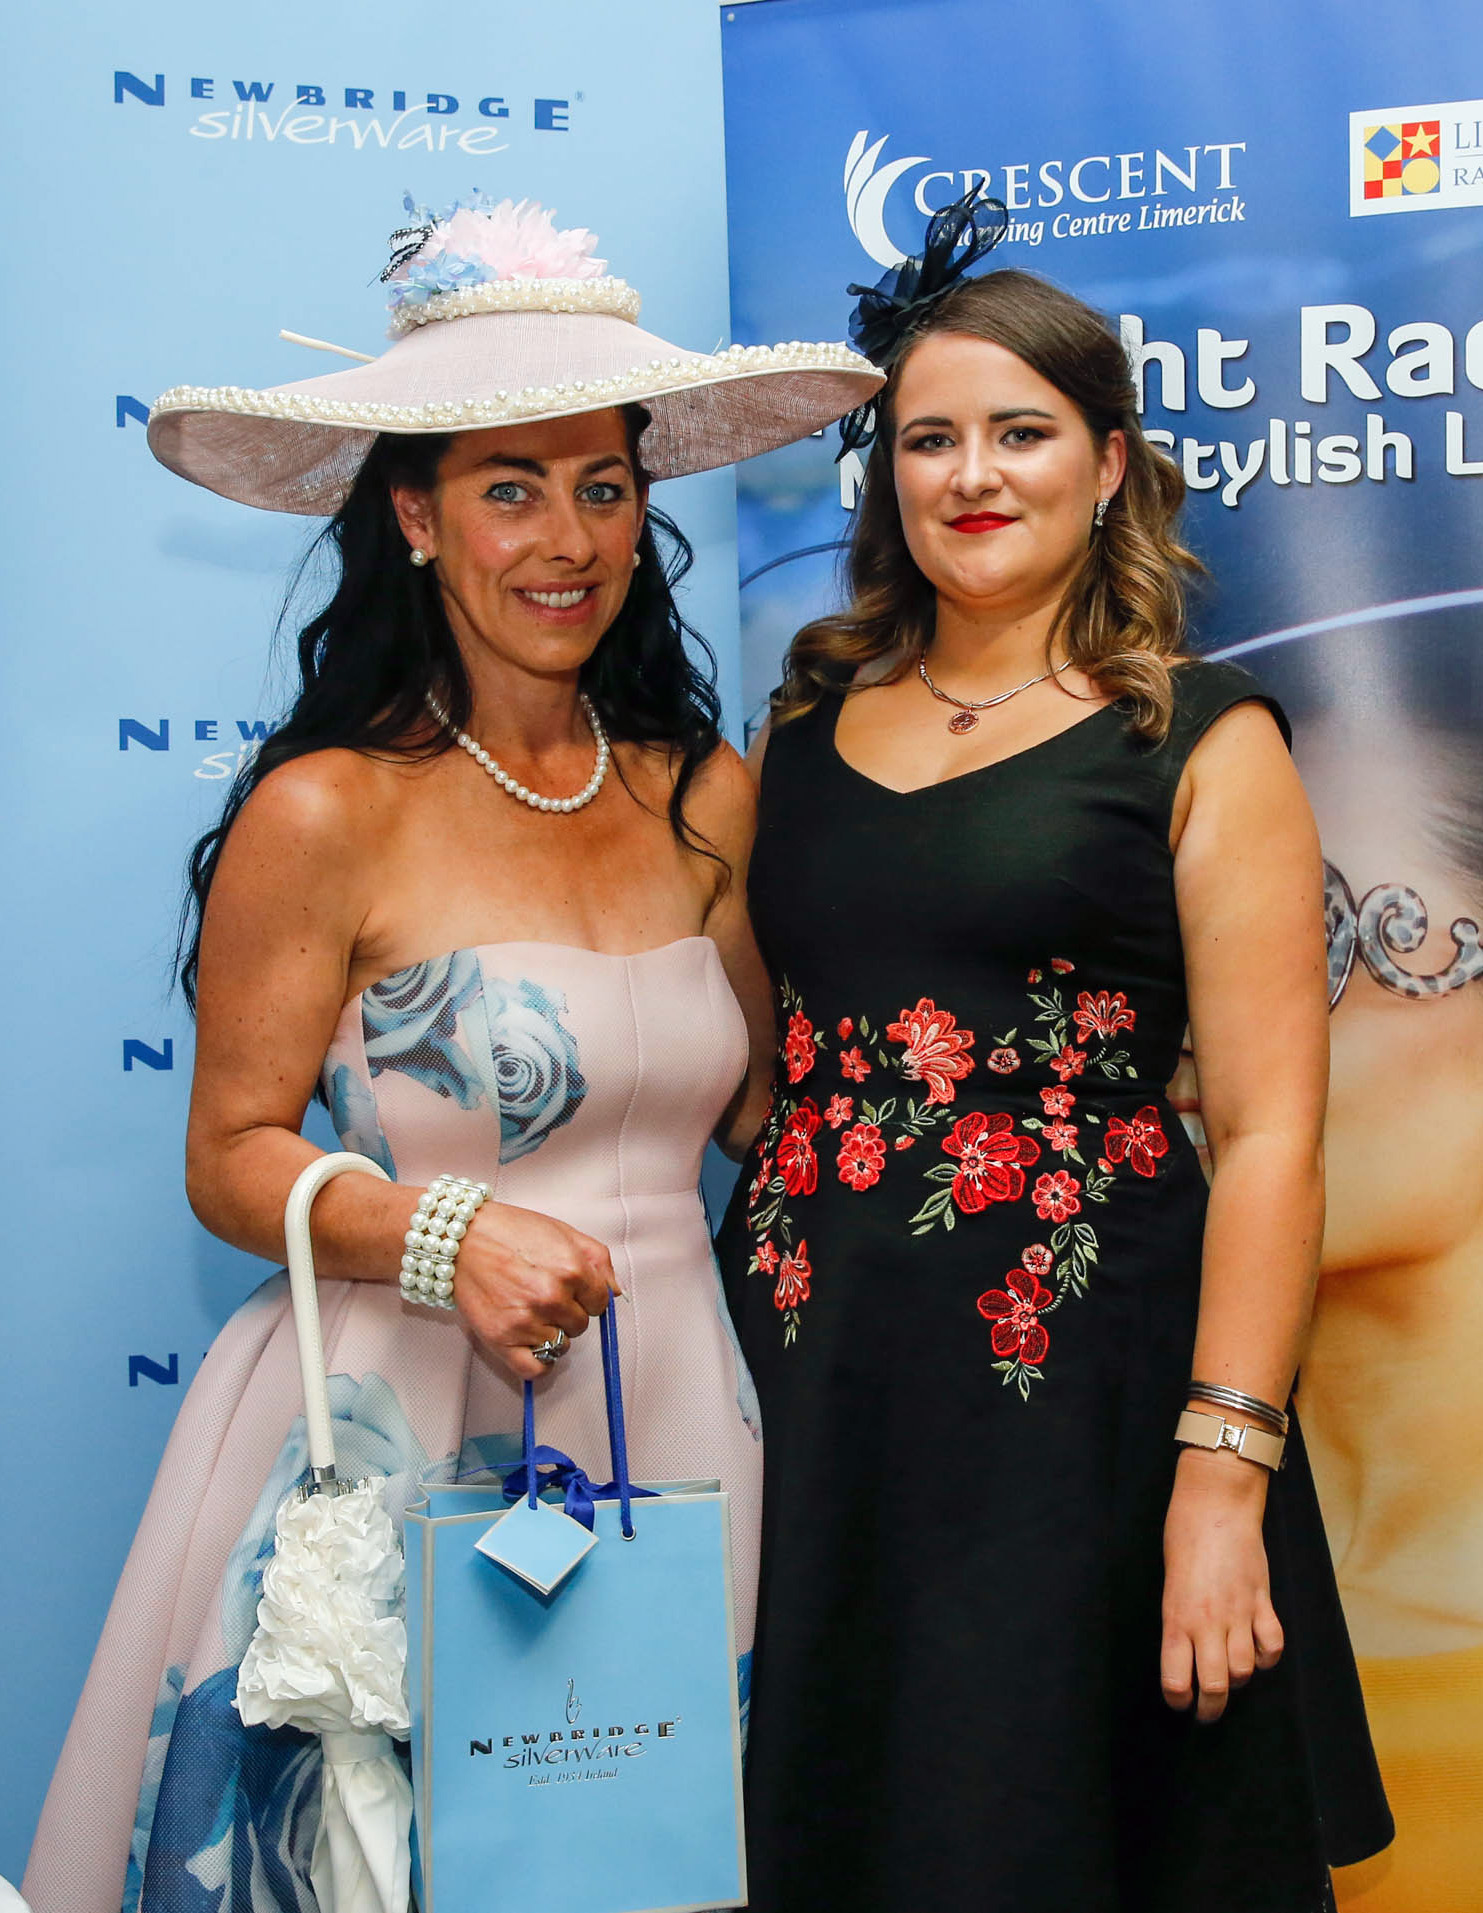 11-6-16 coral.ie Race Day at Limerick Racecourse.Most stylish competition' sponsored by Newbridge Silverware & Neville Jewellers, The Crescent Shopping Centre.Winner was Grace Flynn from Kilcornan pictured here with Roisin Madden, Newbridge Silverware.Picture: Keith Wiseman